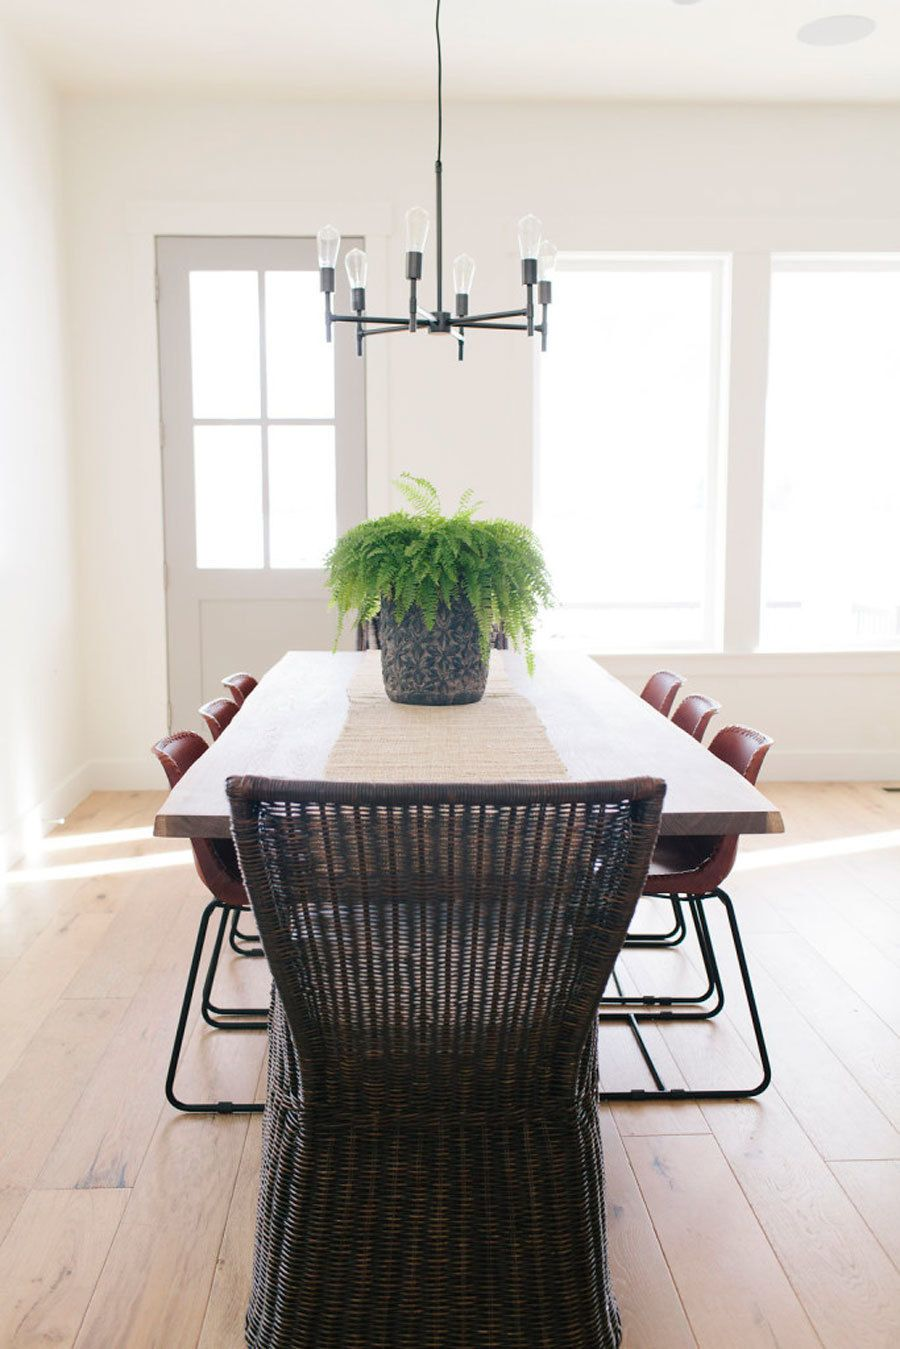 Kimball Dining Room Furniture Enchanting Tour A Home That Checks All Our Favorite Design Trend Boxes Inspiration